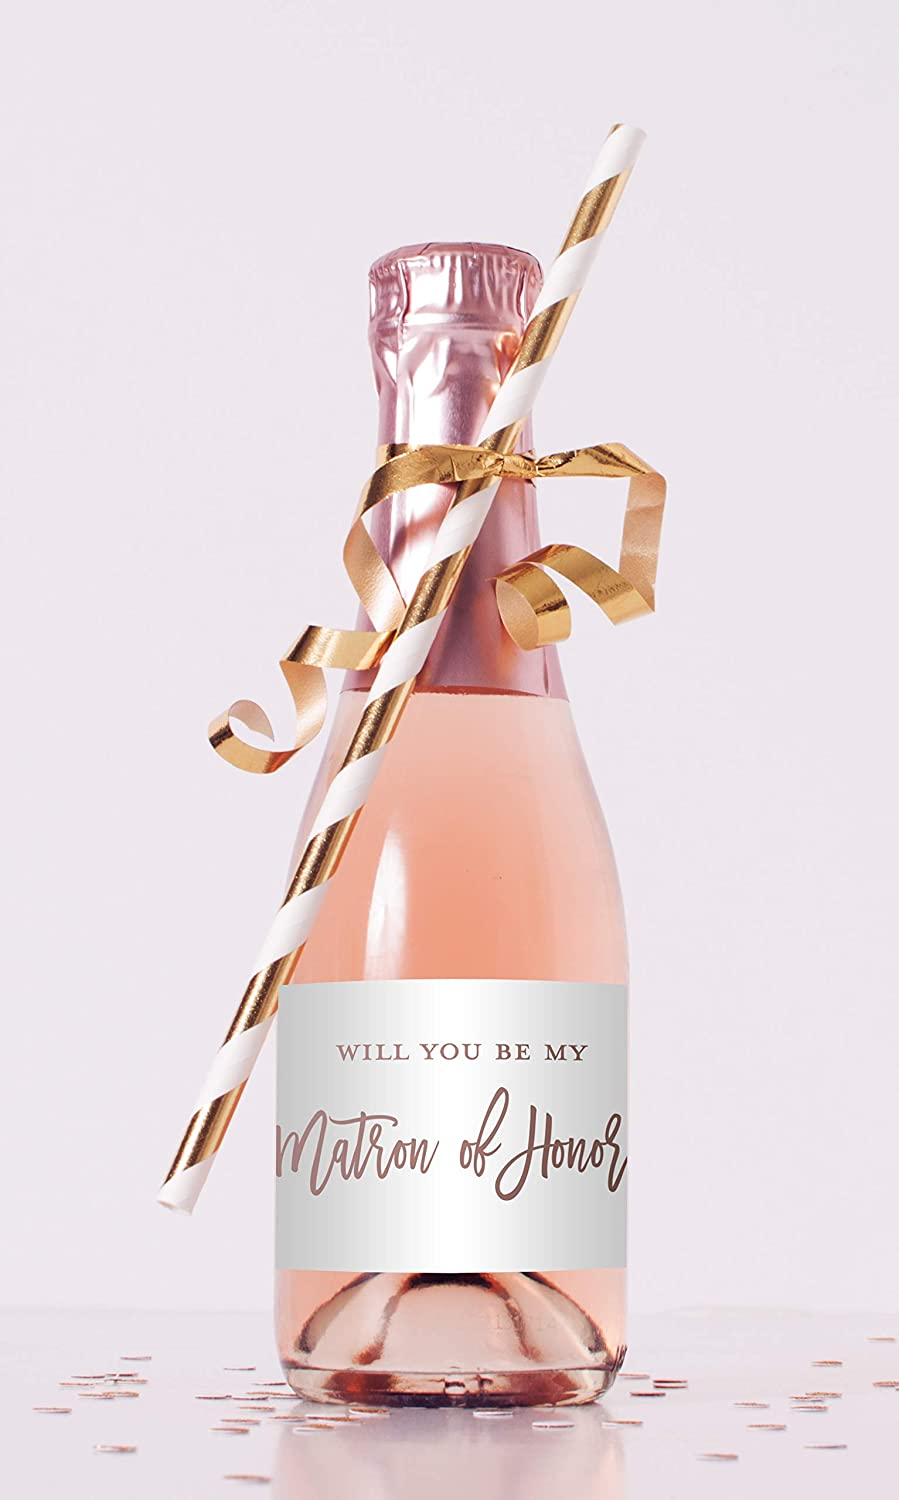 6 Scratch-off Pop Fizz Clink Will You Be My Bridesmaid  Maid of Honor Write-in Invitations  Pink Champagne and Gold Foil  Set of 6